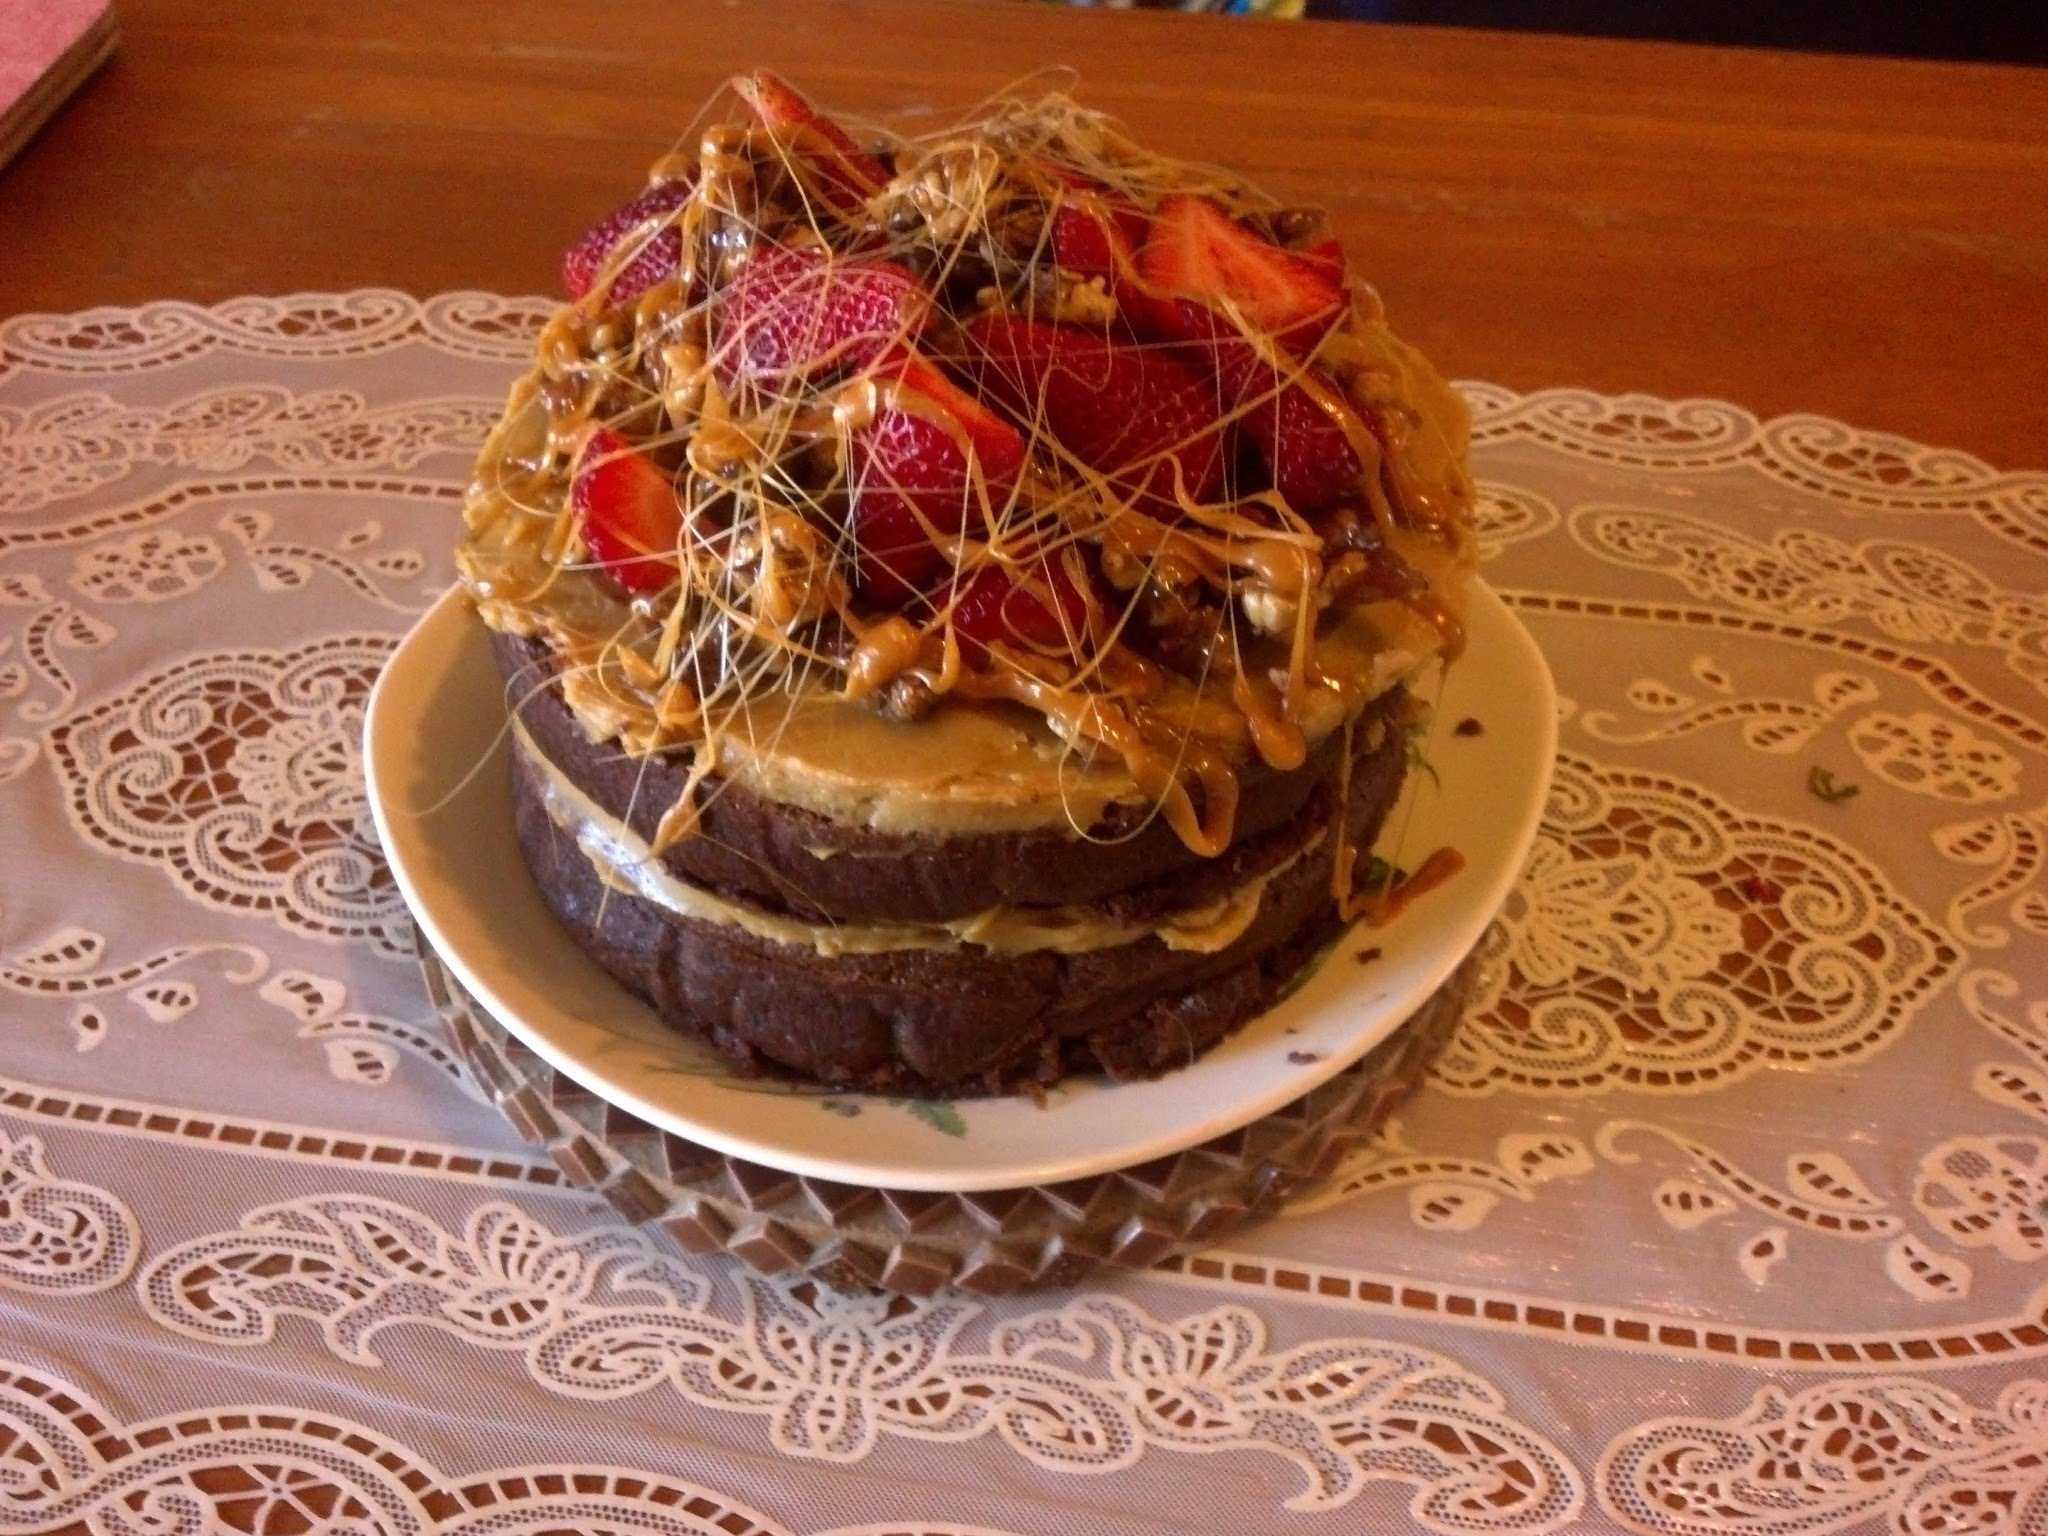 Gluten Free Chocolate Cake with Caramel Frosting